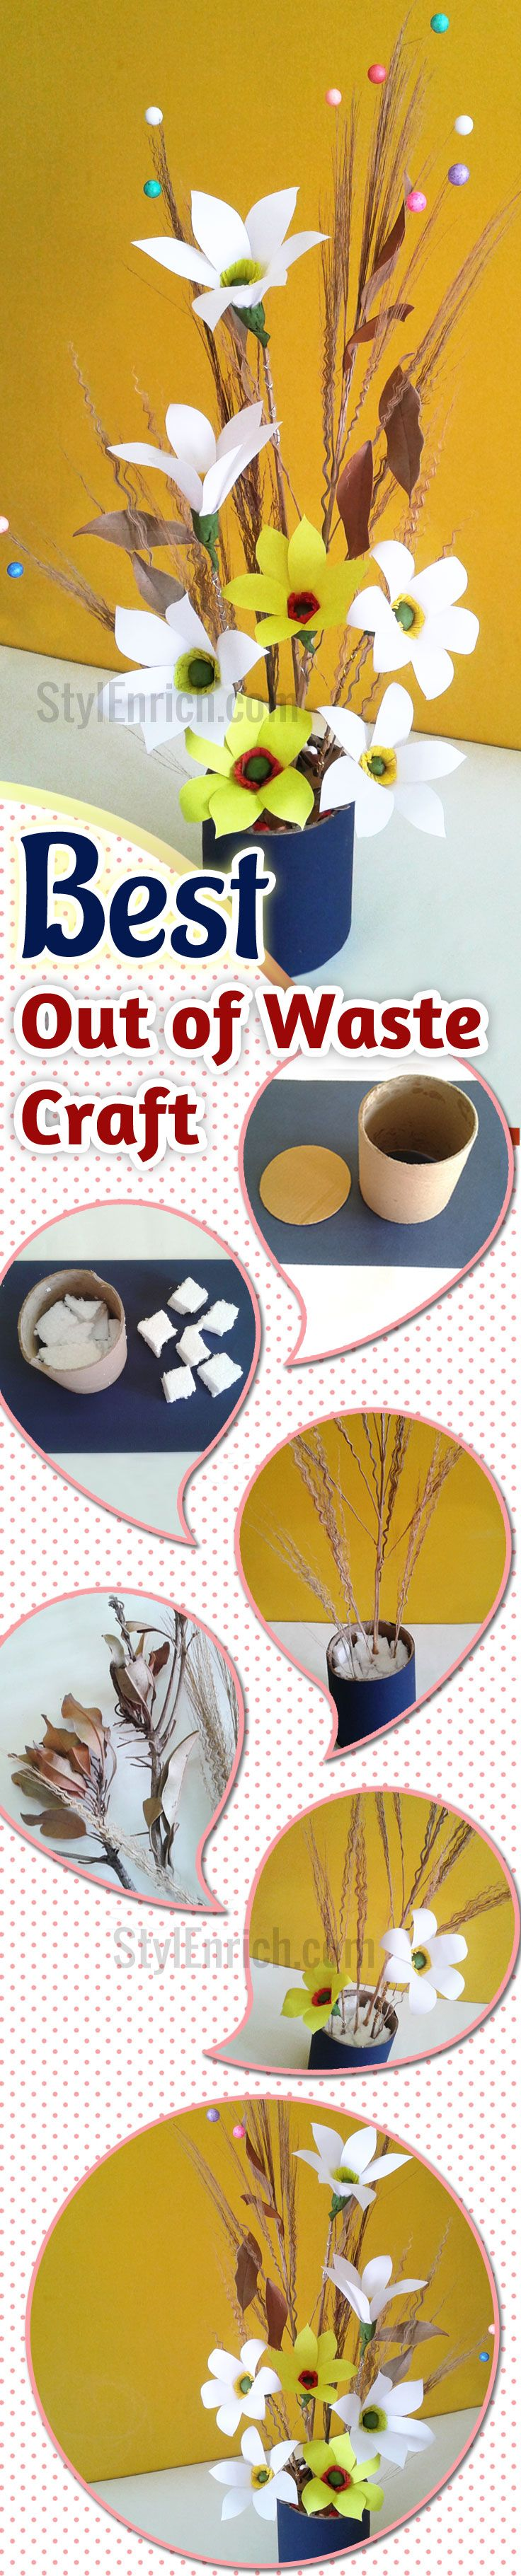 49 best images about best out of waste on pinterest for What is best out of waste